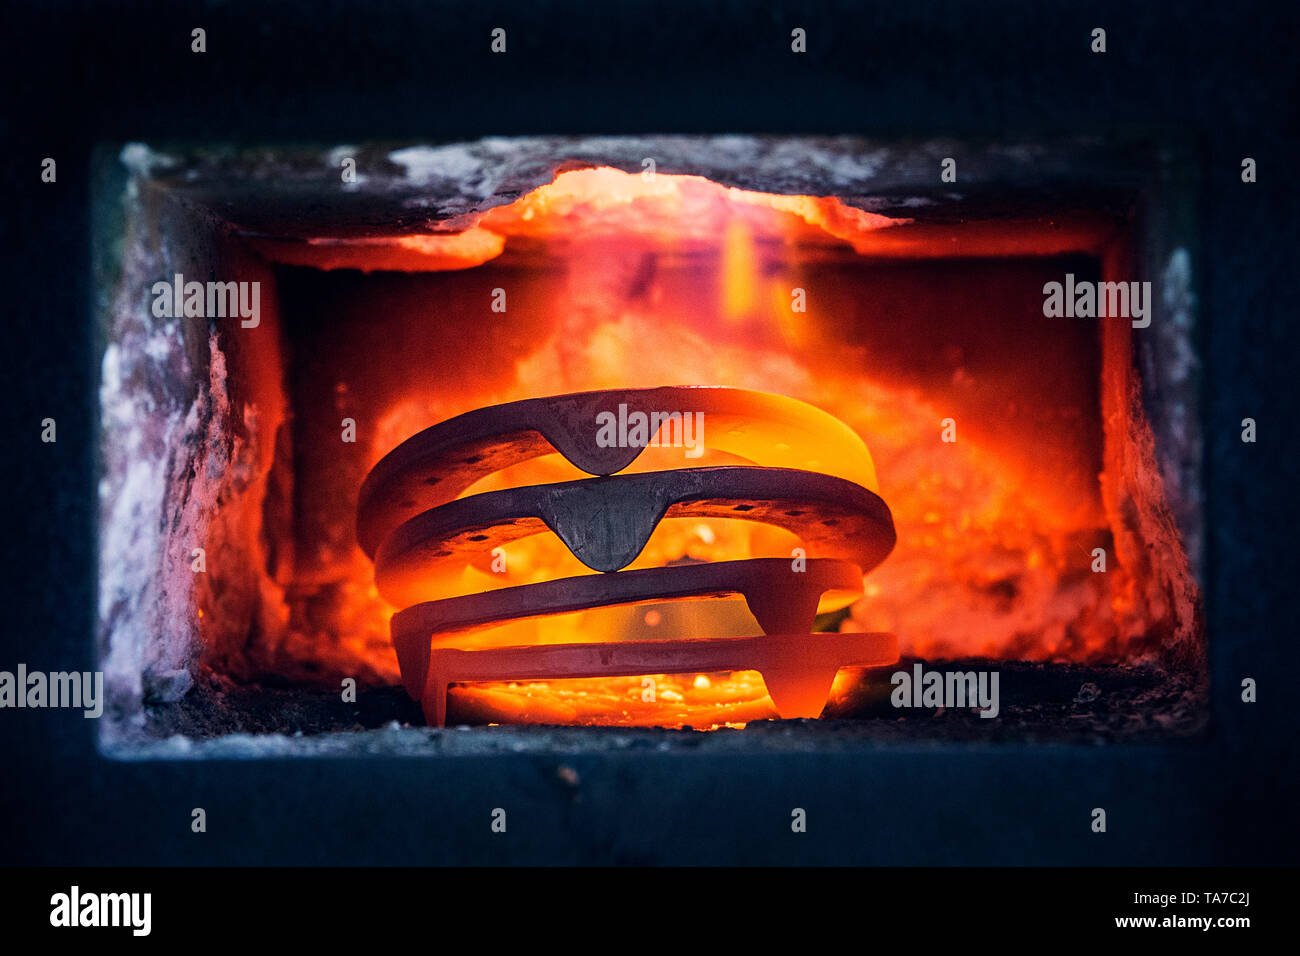 Horseshoein the forge of a farrier. Austria - Stock Image